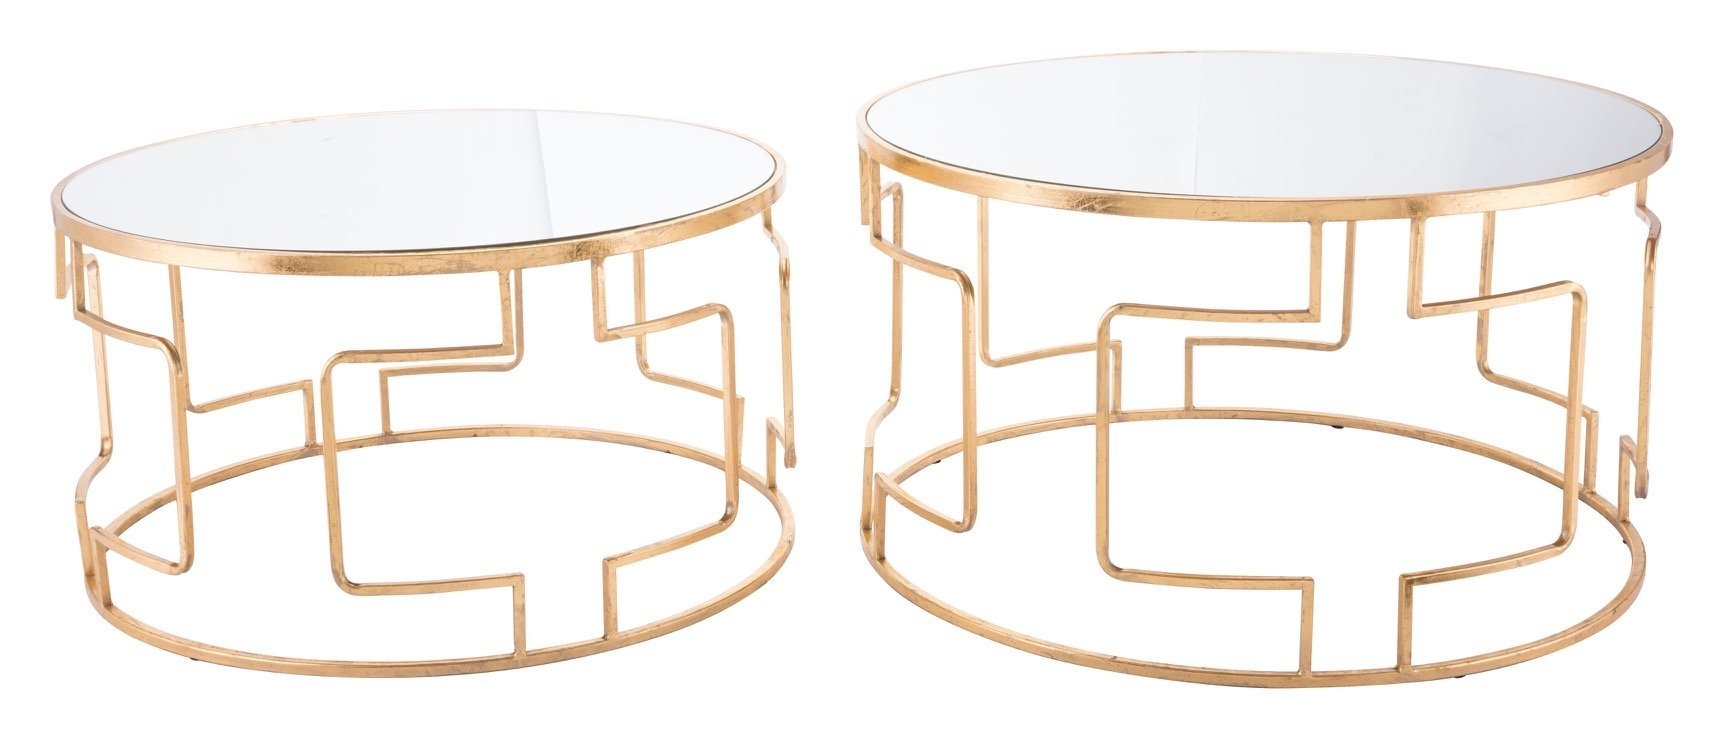 king round accent tables gold with mirrored glass top set side alan decor table red lamps for bedroom wood and end outdoor target wireless cooler drinks white living room